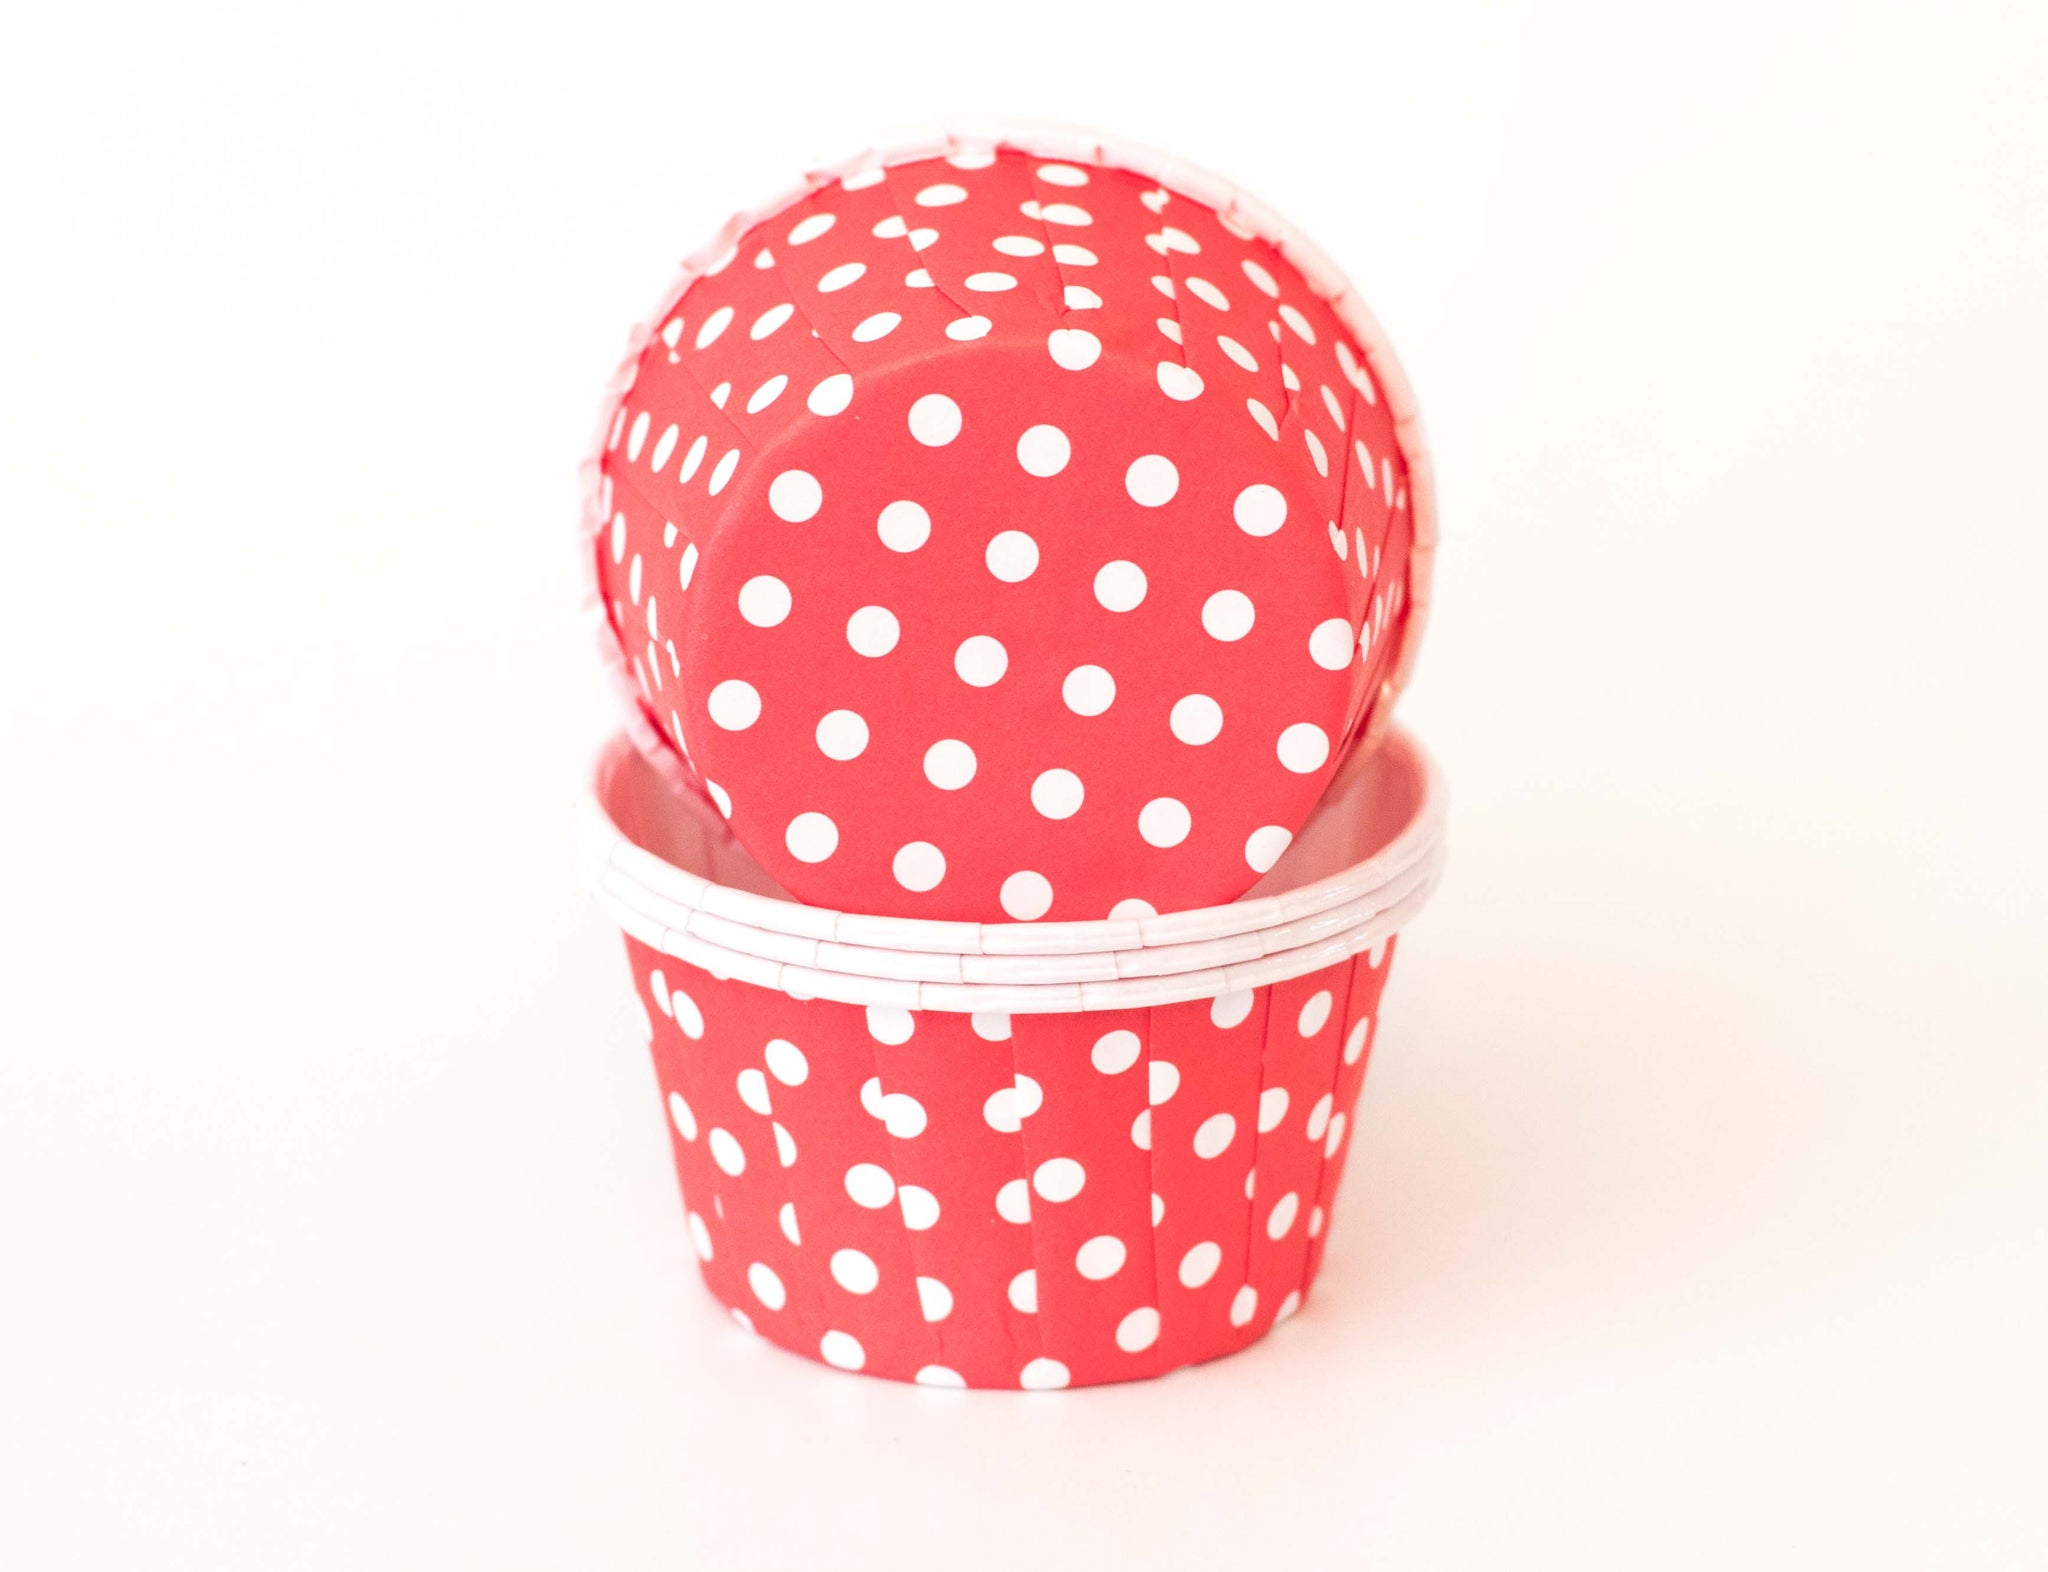 Baking Cups - Red Polka Dot - Pkg of 24